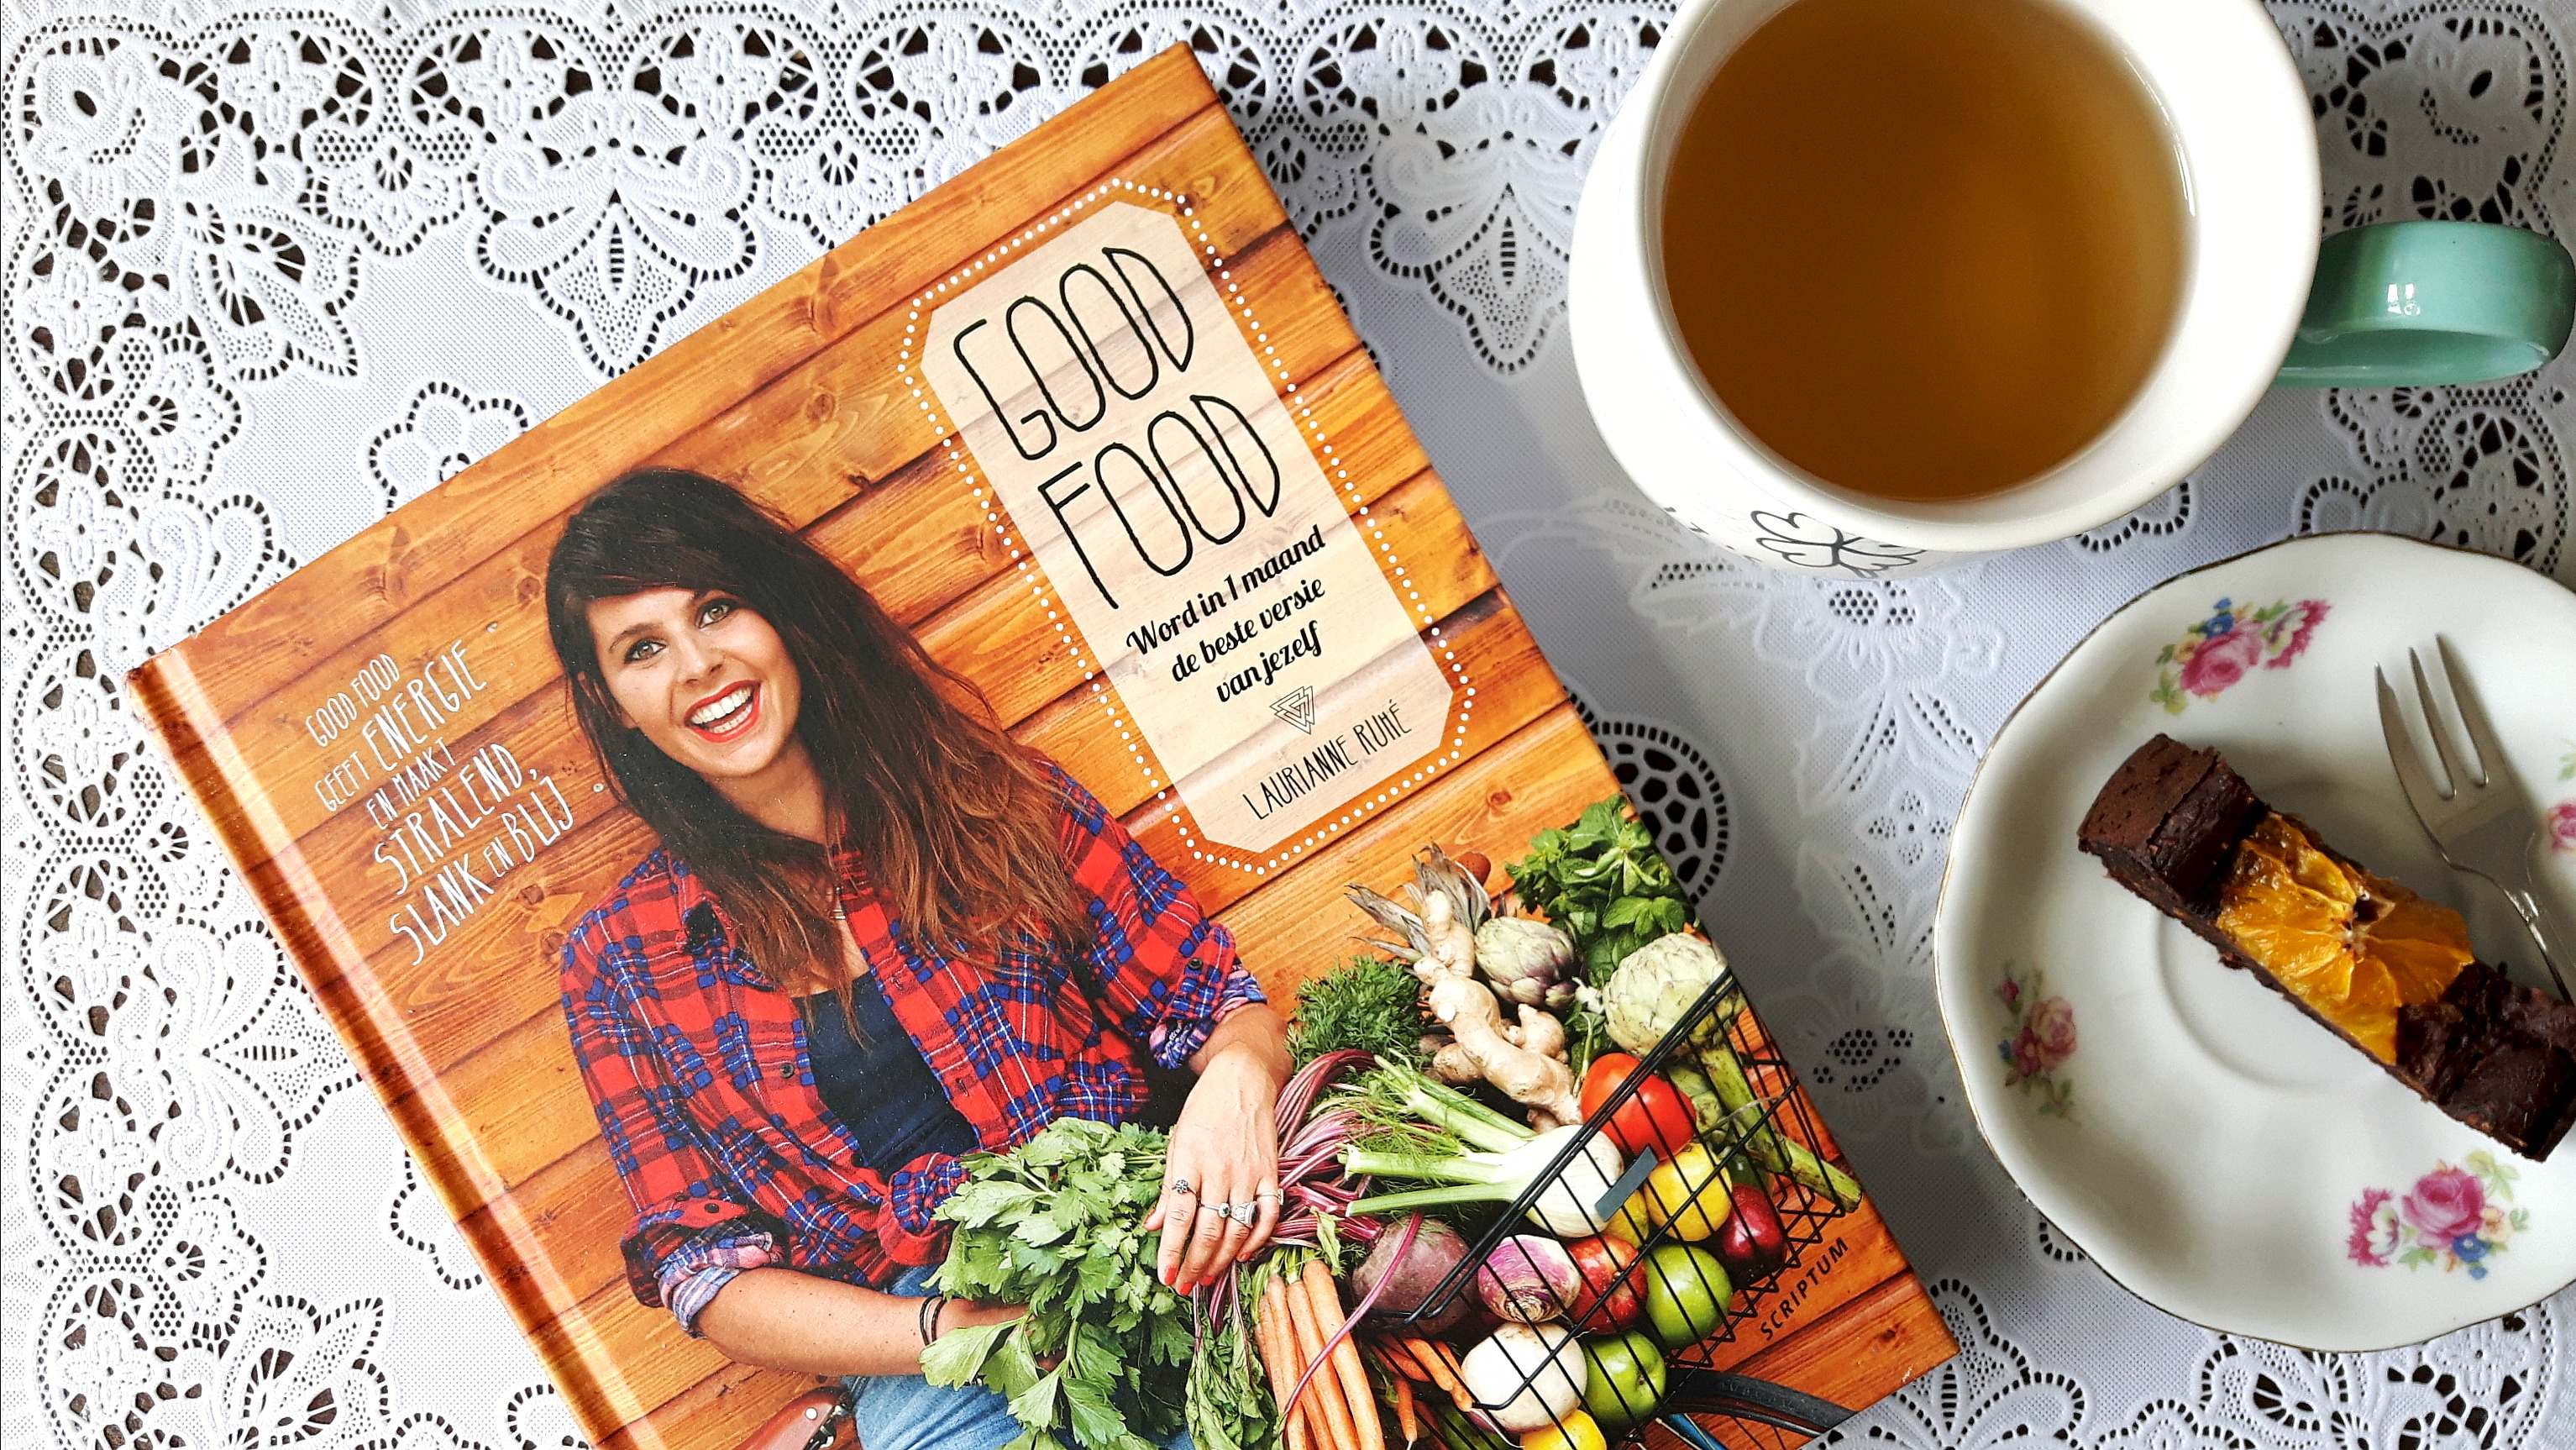 Boekreview: Good Food – Laurianne Ruhé